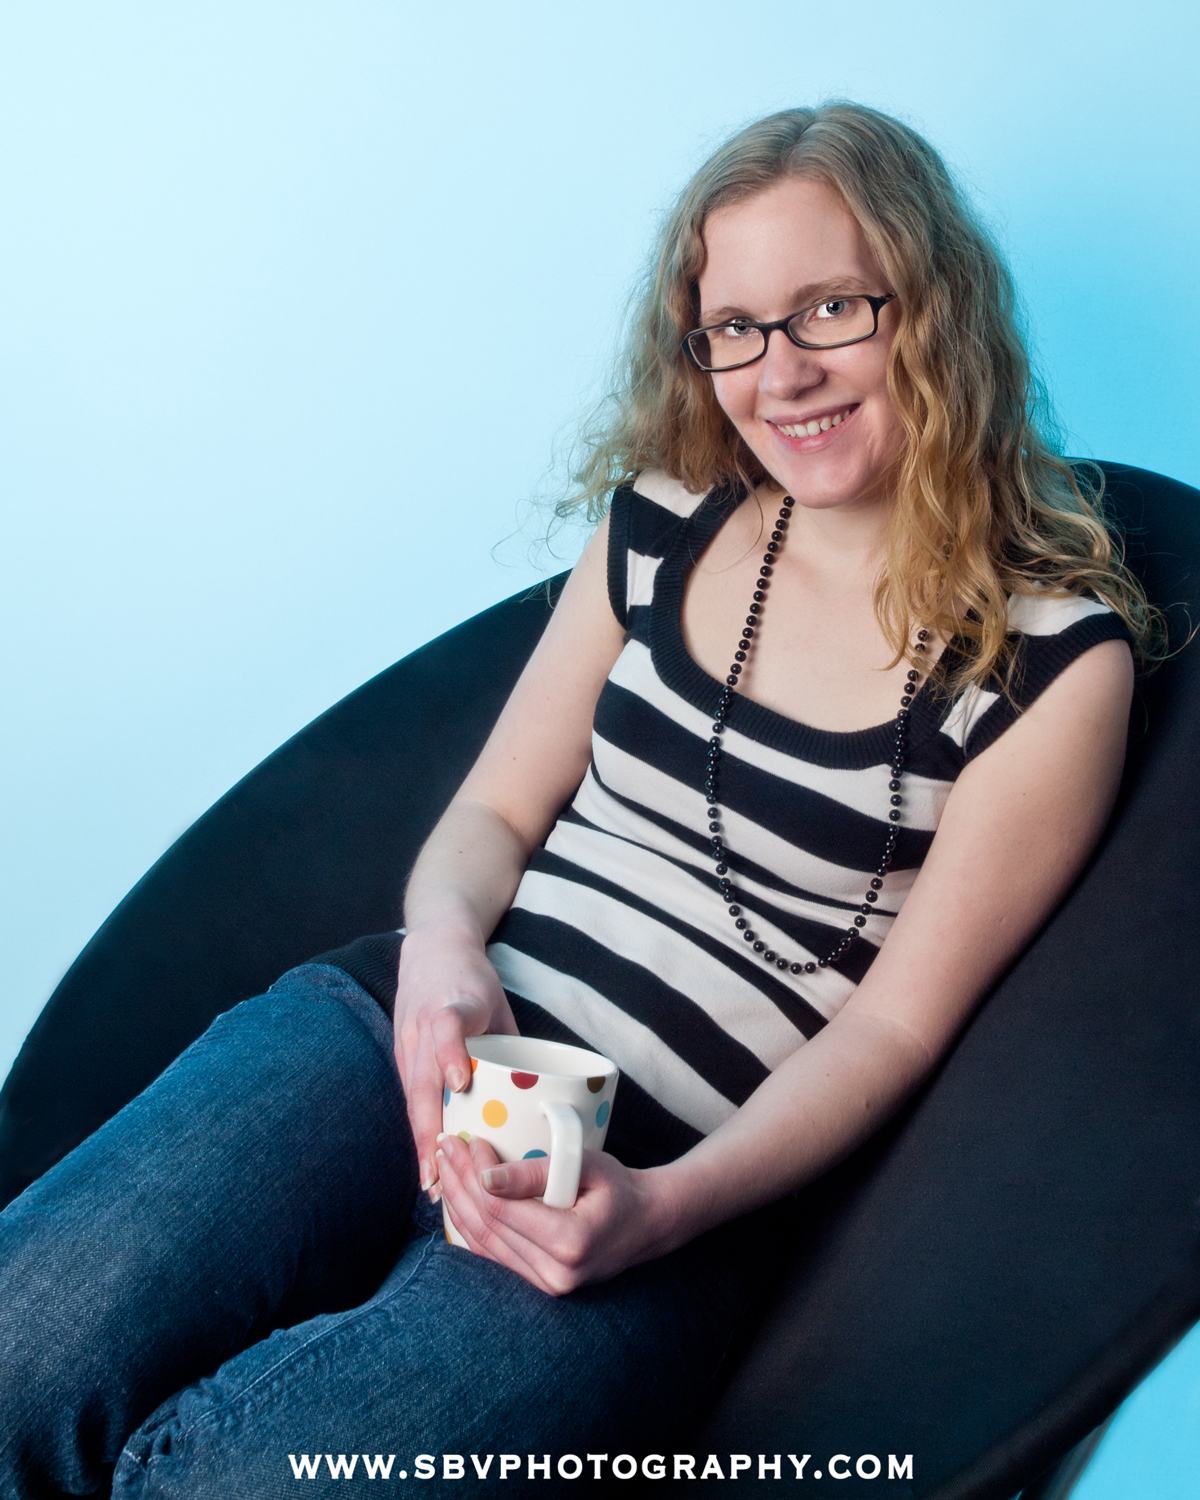 Professional web designer and blogger from Northwest Indiana in a lifestyle publicity photograph.